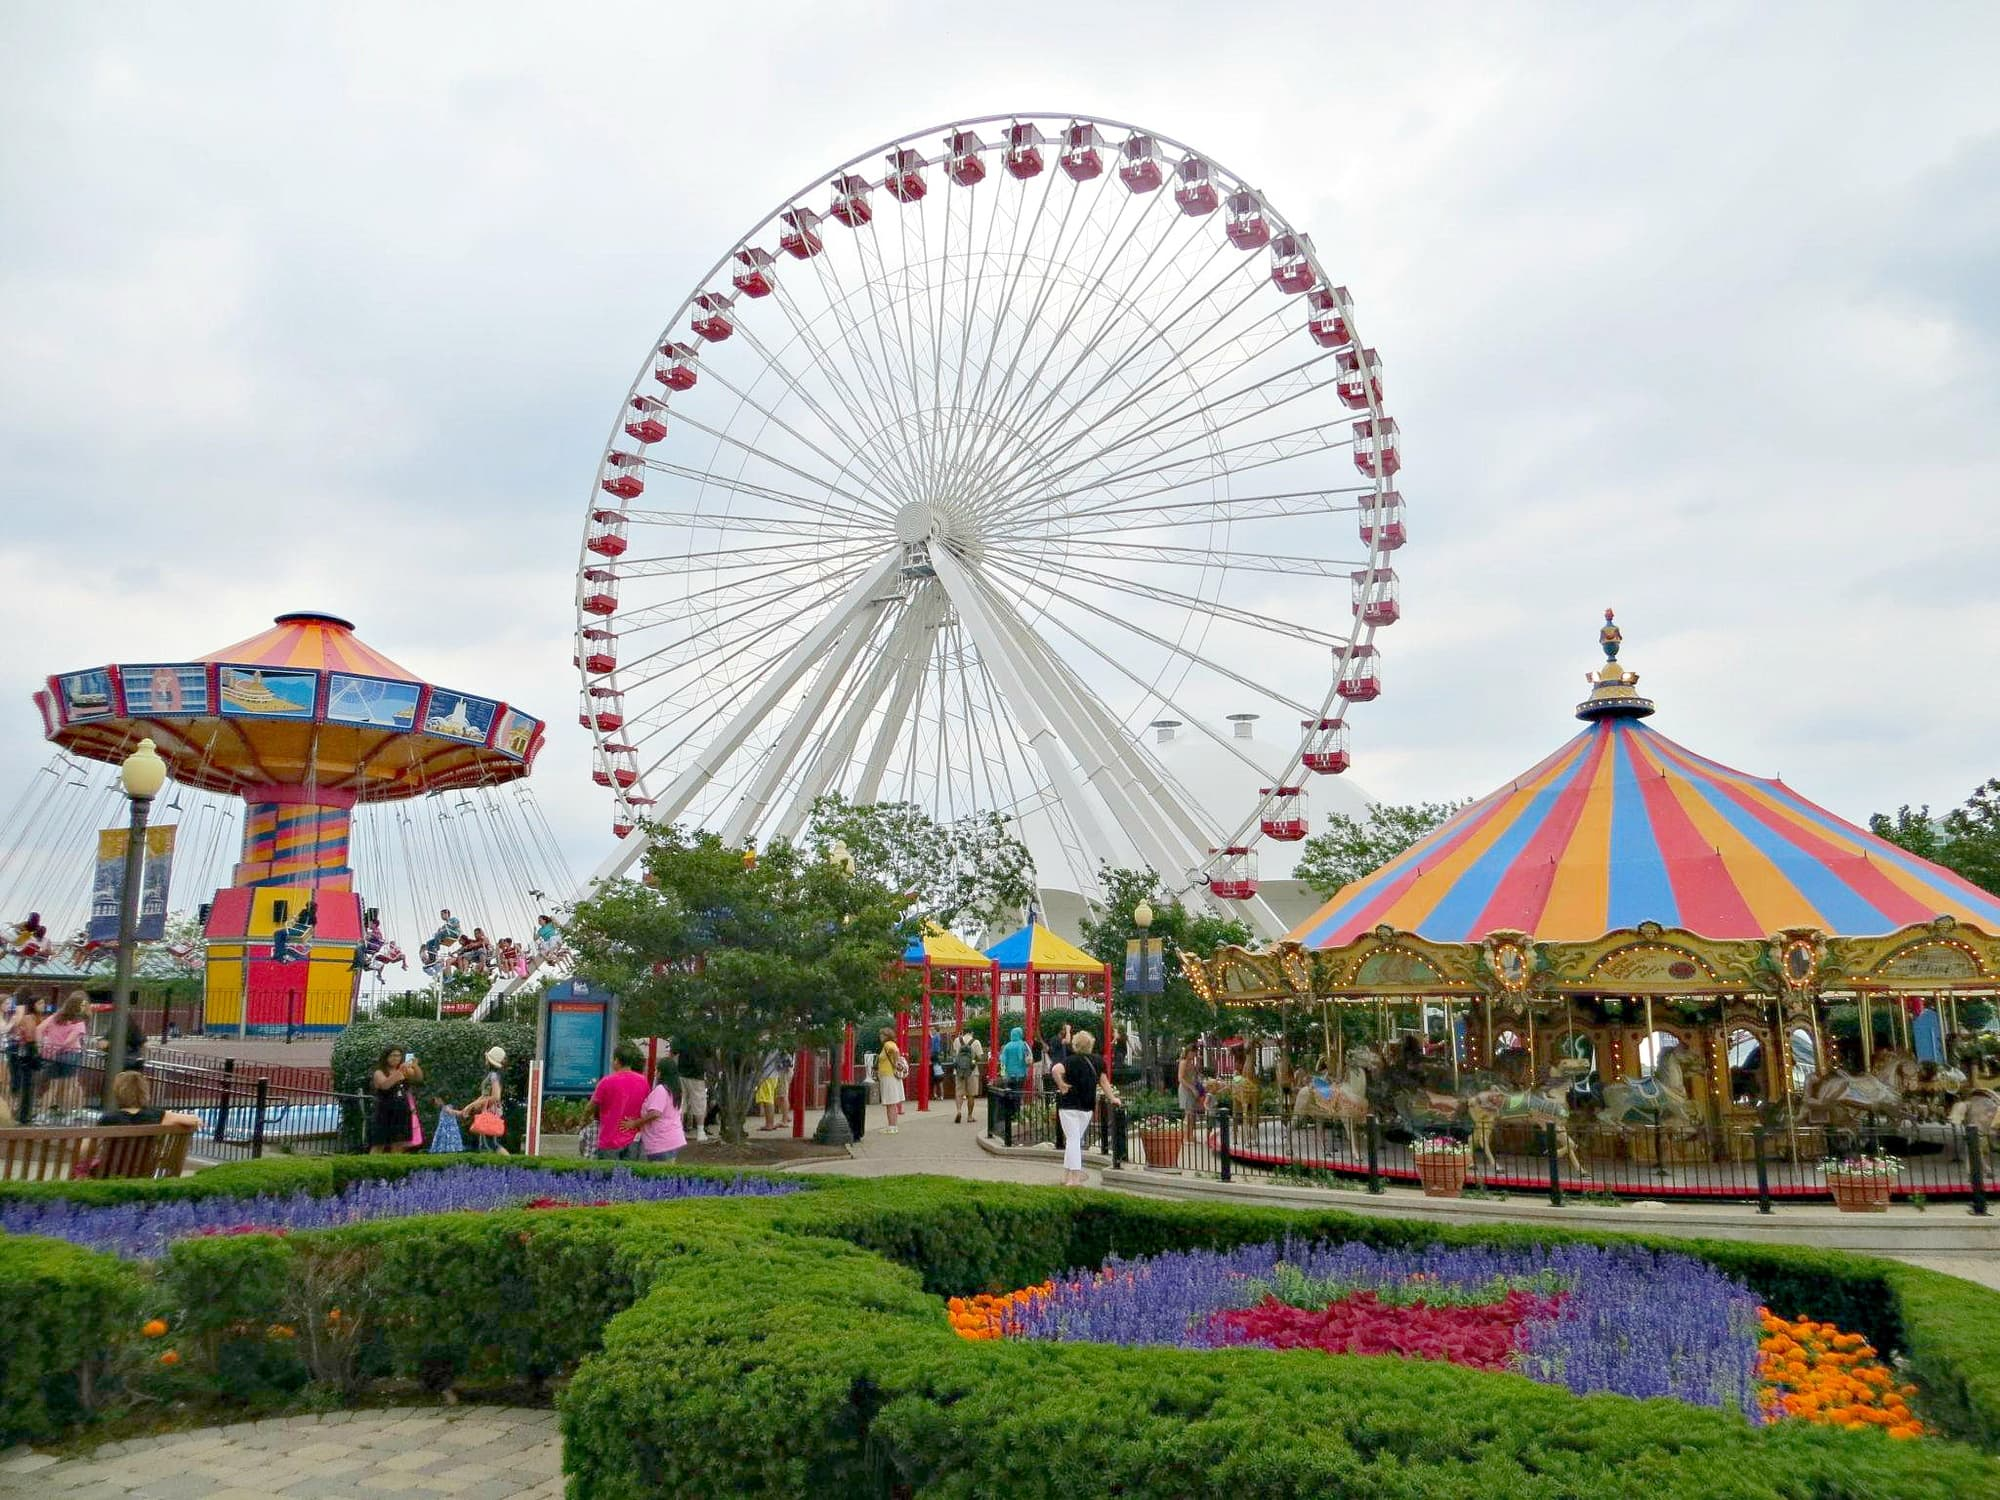 A ride on the Millennial Wheel is a must-do while in Chicago with kids